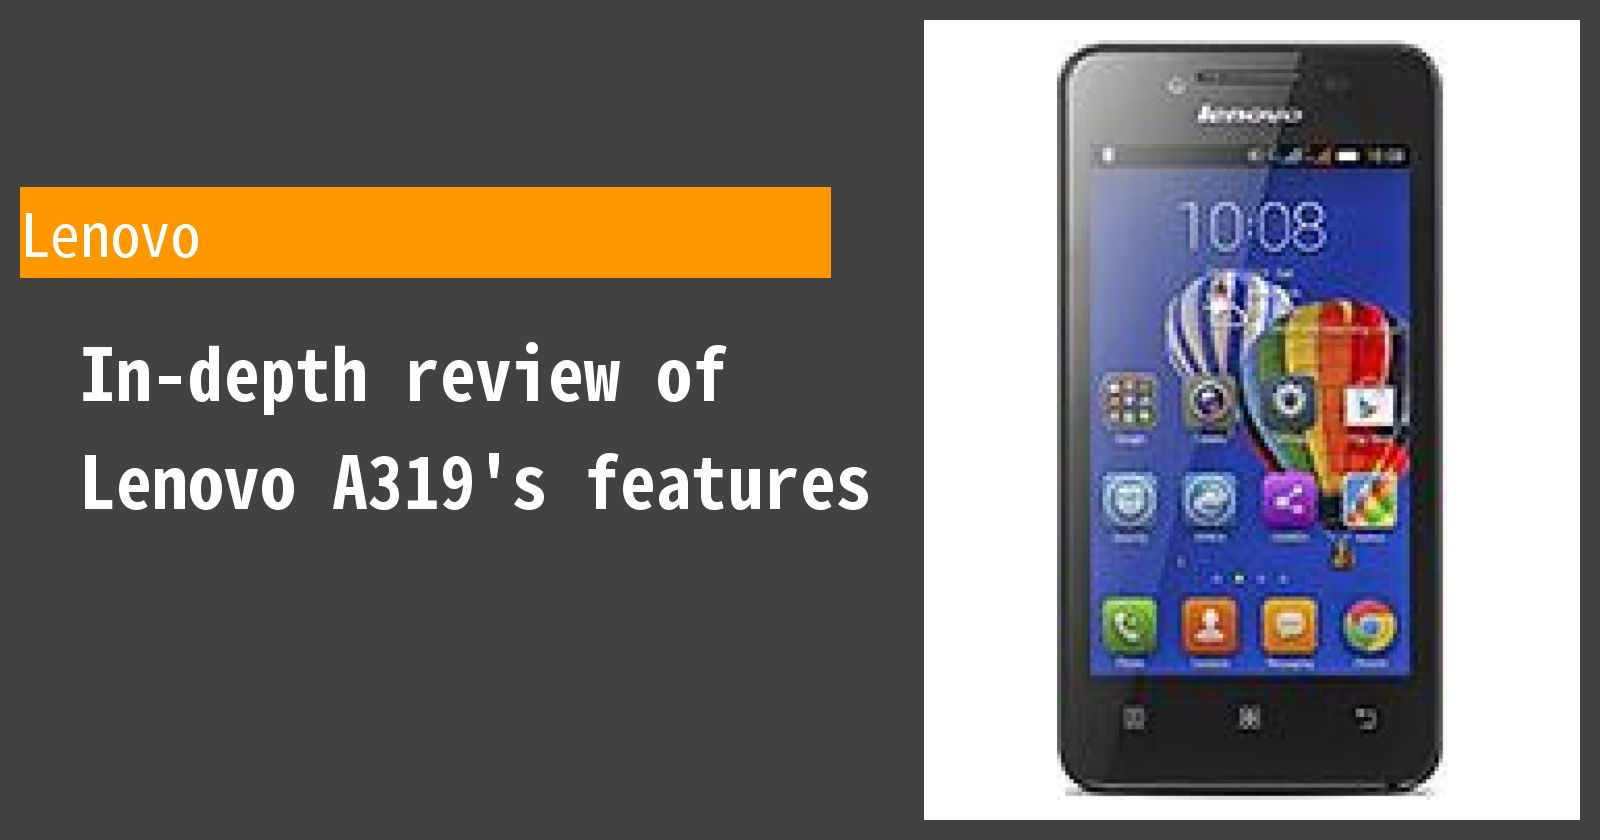 Review of Lenovo A319  Thorough explanation of the pros and